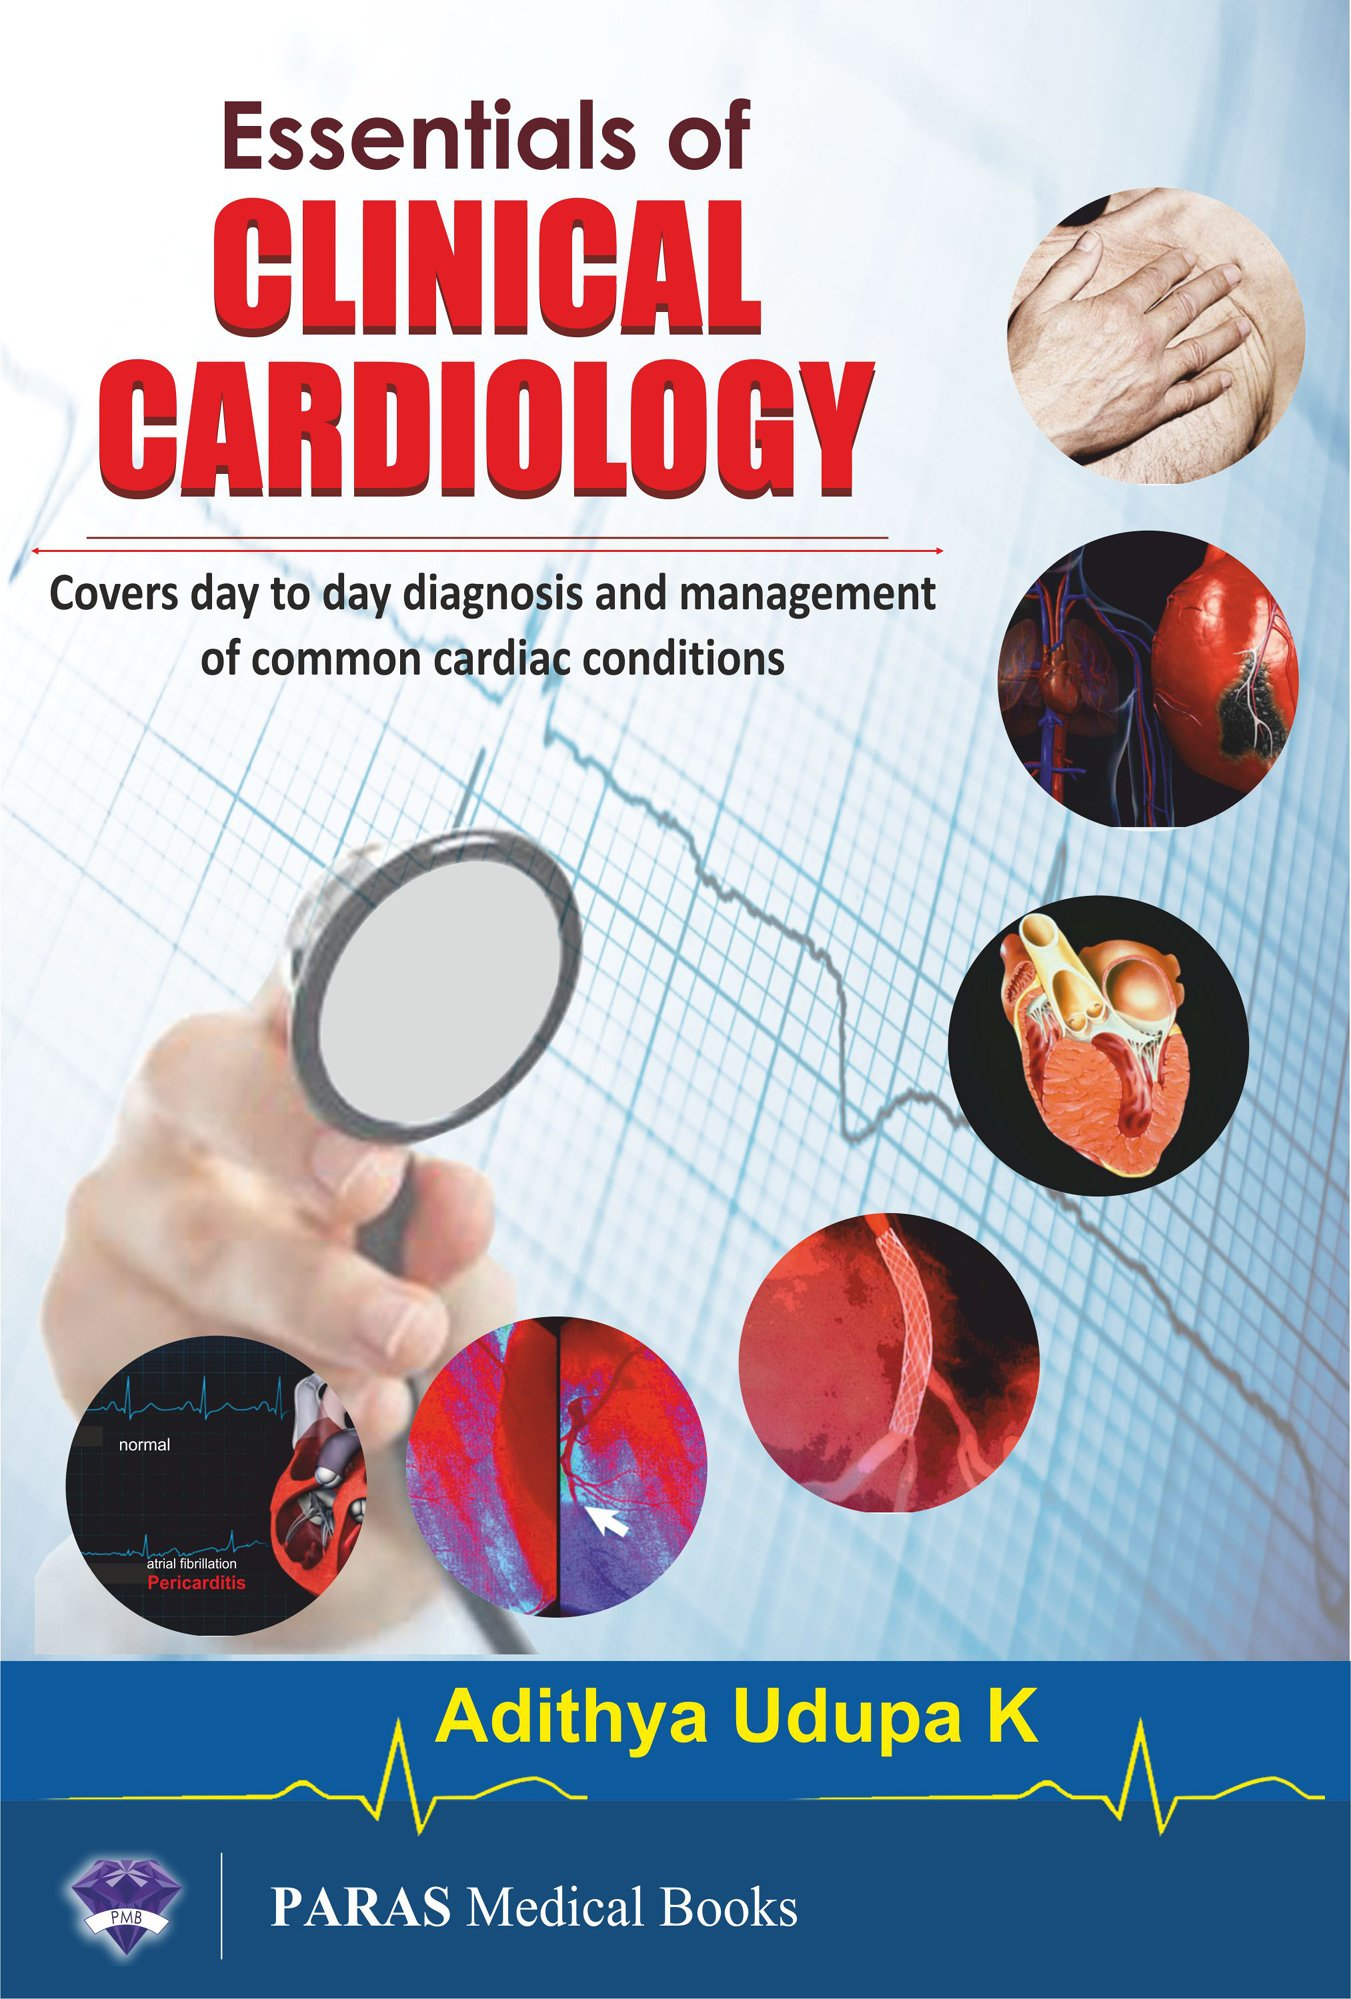 Buy Essentials of Clinical Cardiology (Clinical Cardiology